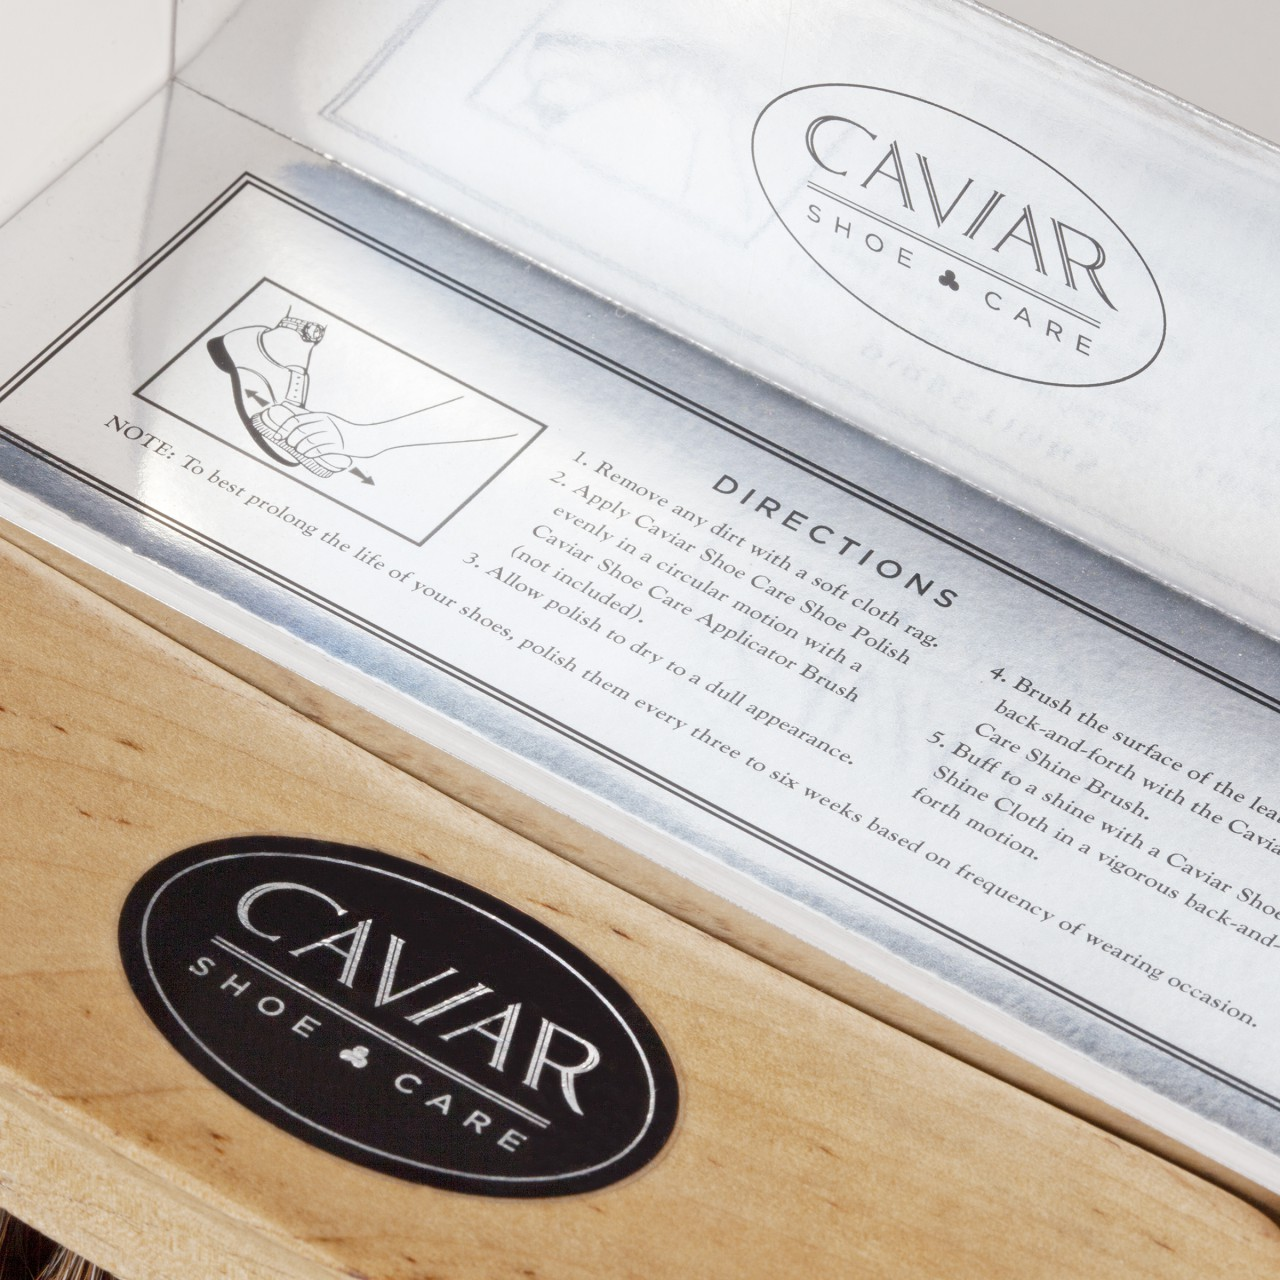 Image of Caviar Shoe Care logo package labels